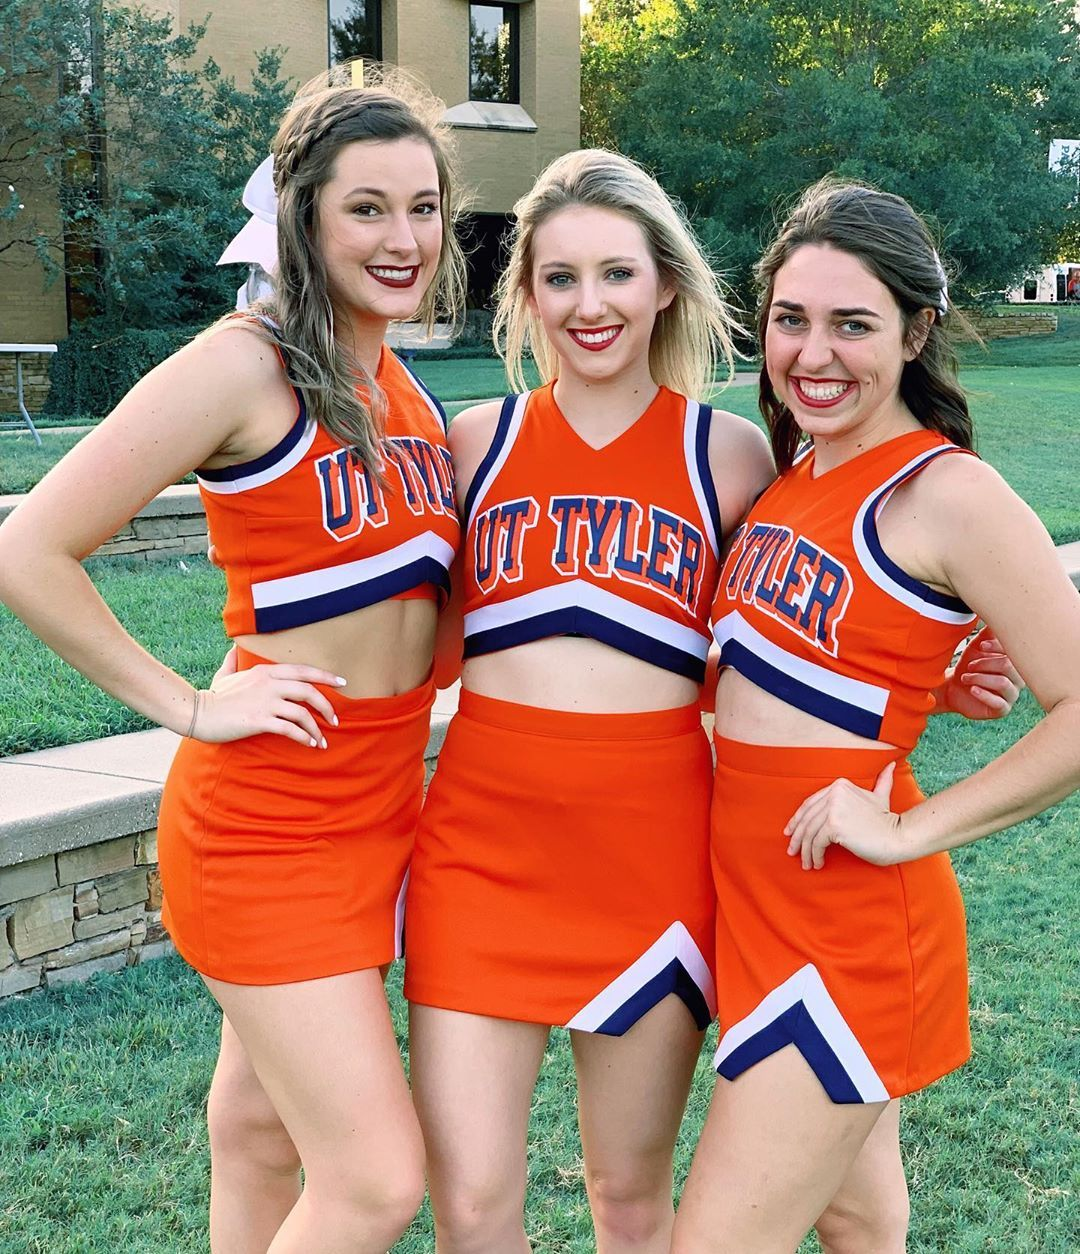 Delta Gamma Eta Xi At Ut Tyler Uttdeltagamma Instagram Photos And Videos Best Friend Photography Friends Photography Cheerleading